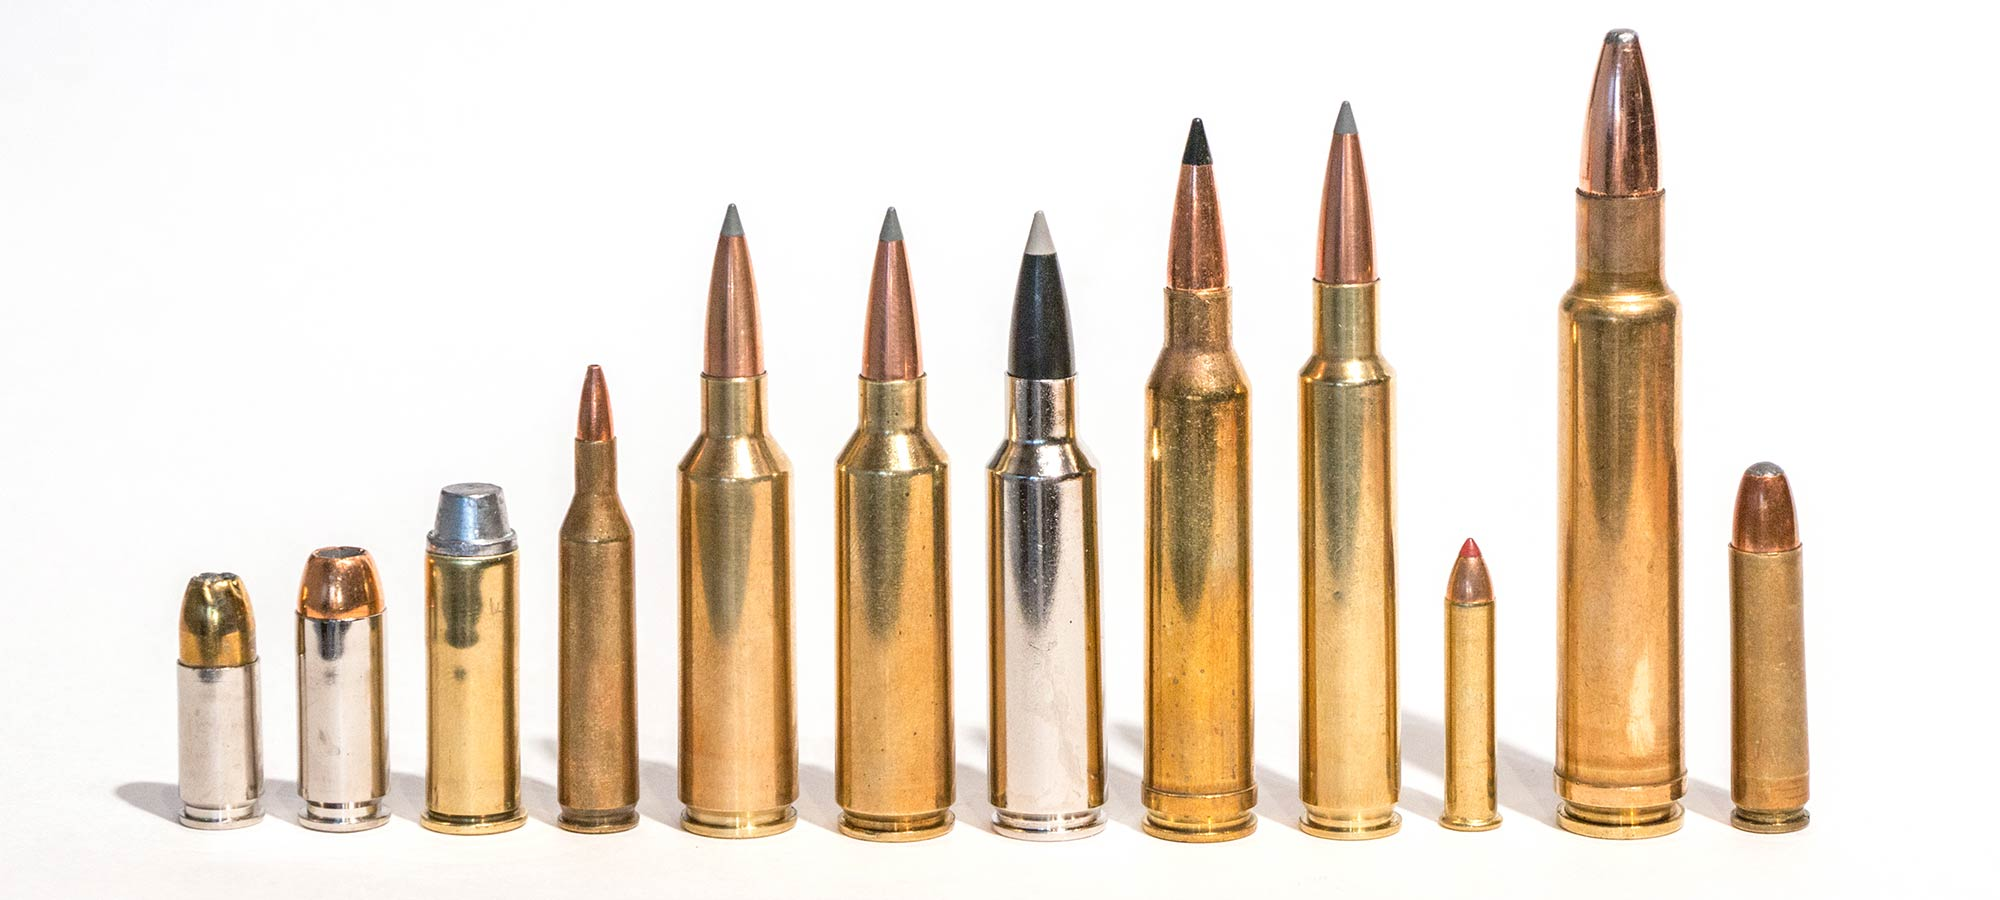 overrated gun and ammo cartridges